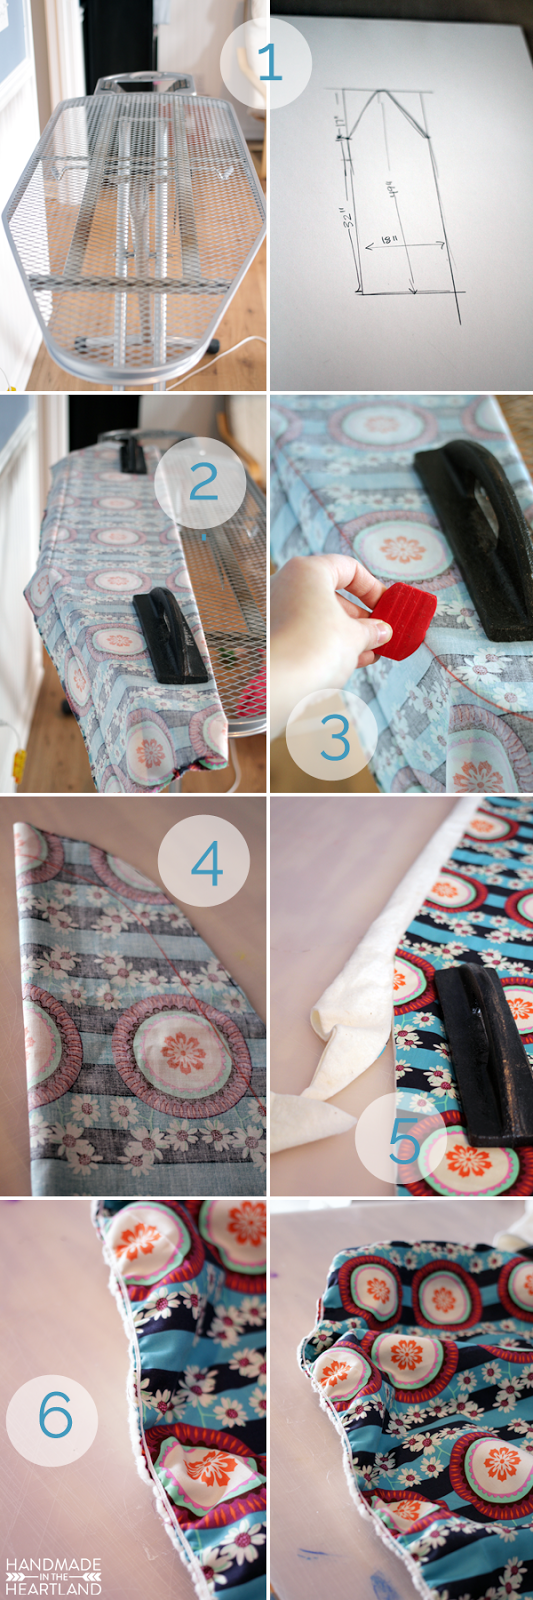 how to Make an Ironing Board Cover